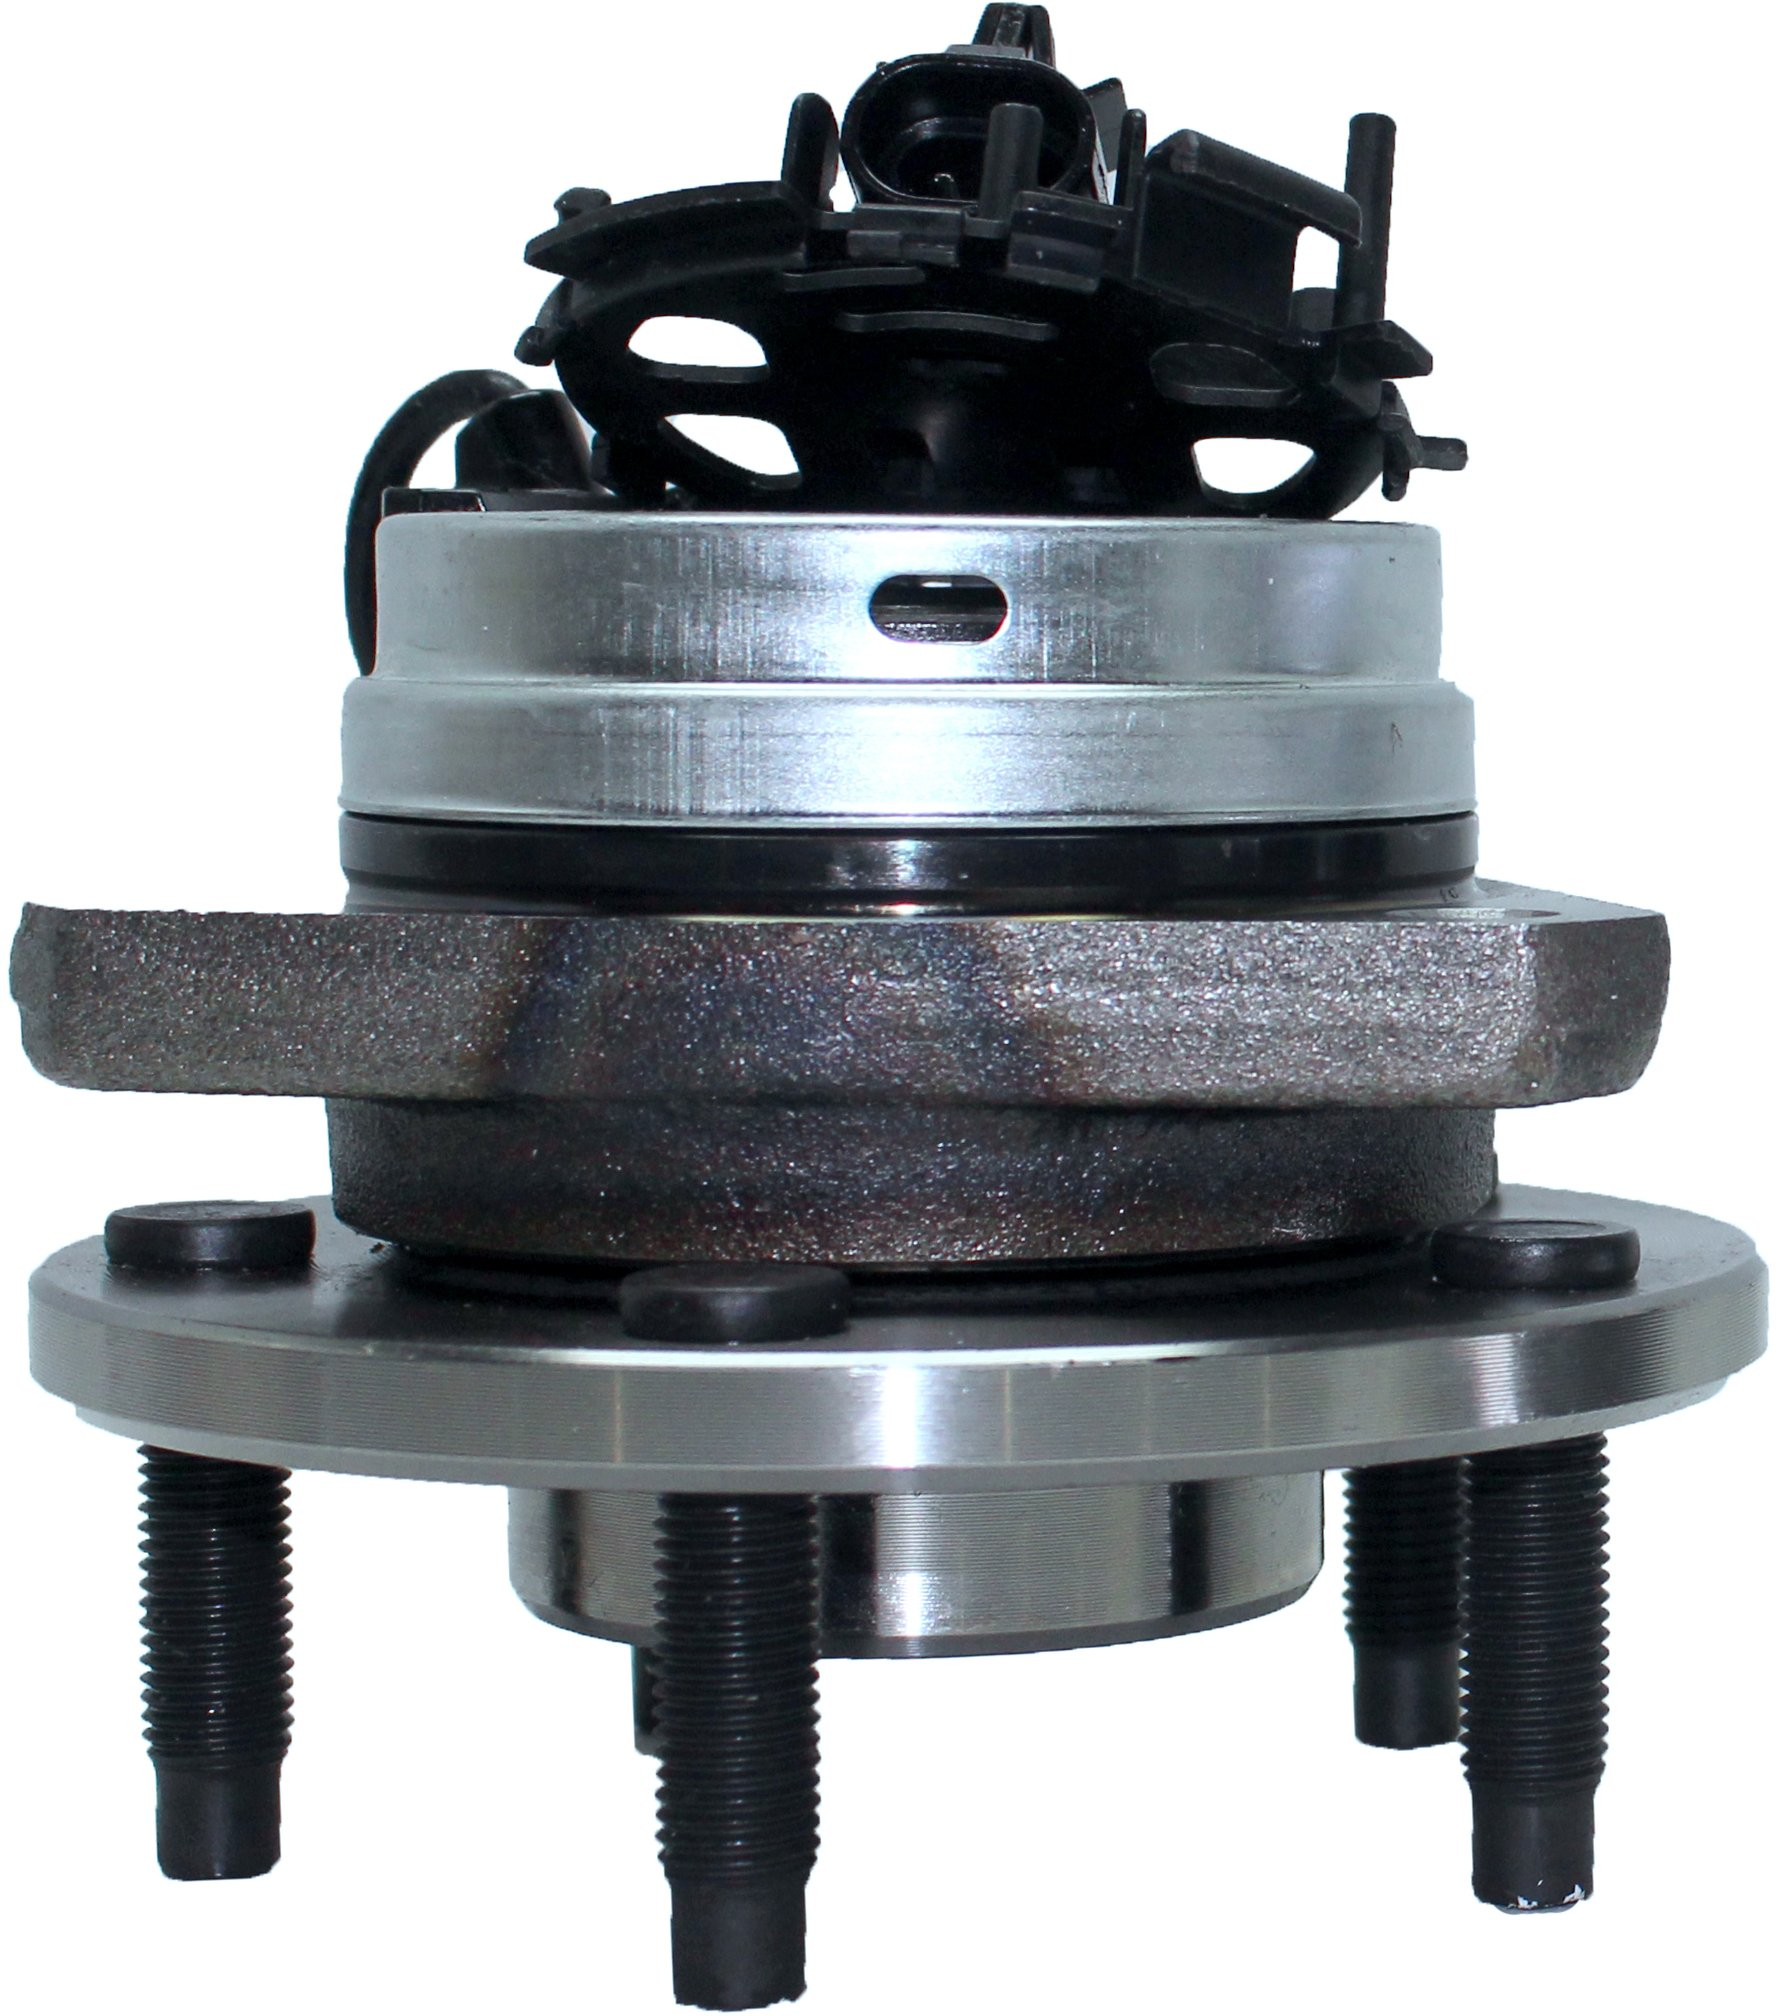 Detroit Axle Brand New Front Driver or Passenger Side Wheel Hub and Bearing Assembly w/ABS for - Malibu, G6, Aura